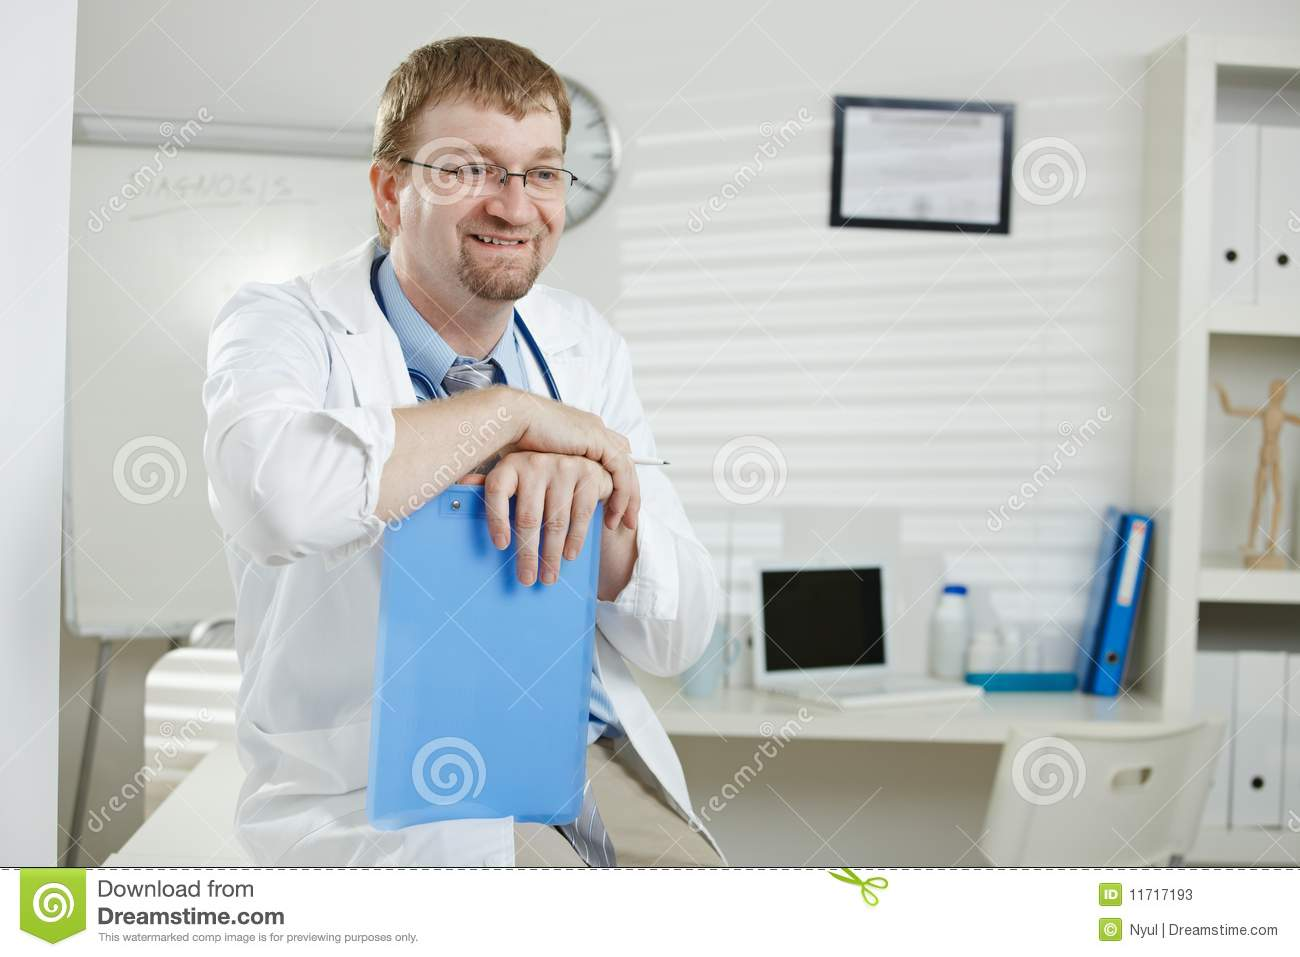 Male doctor in office